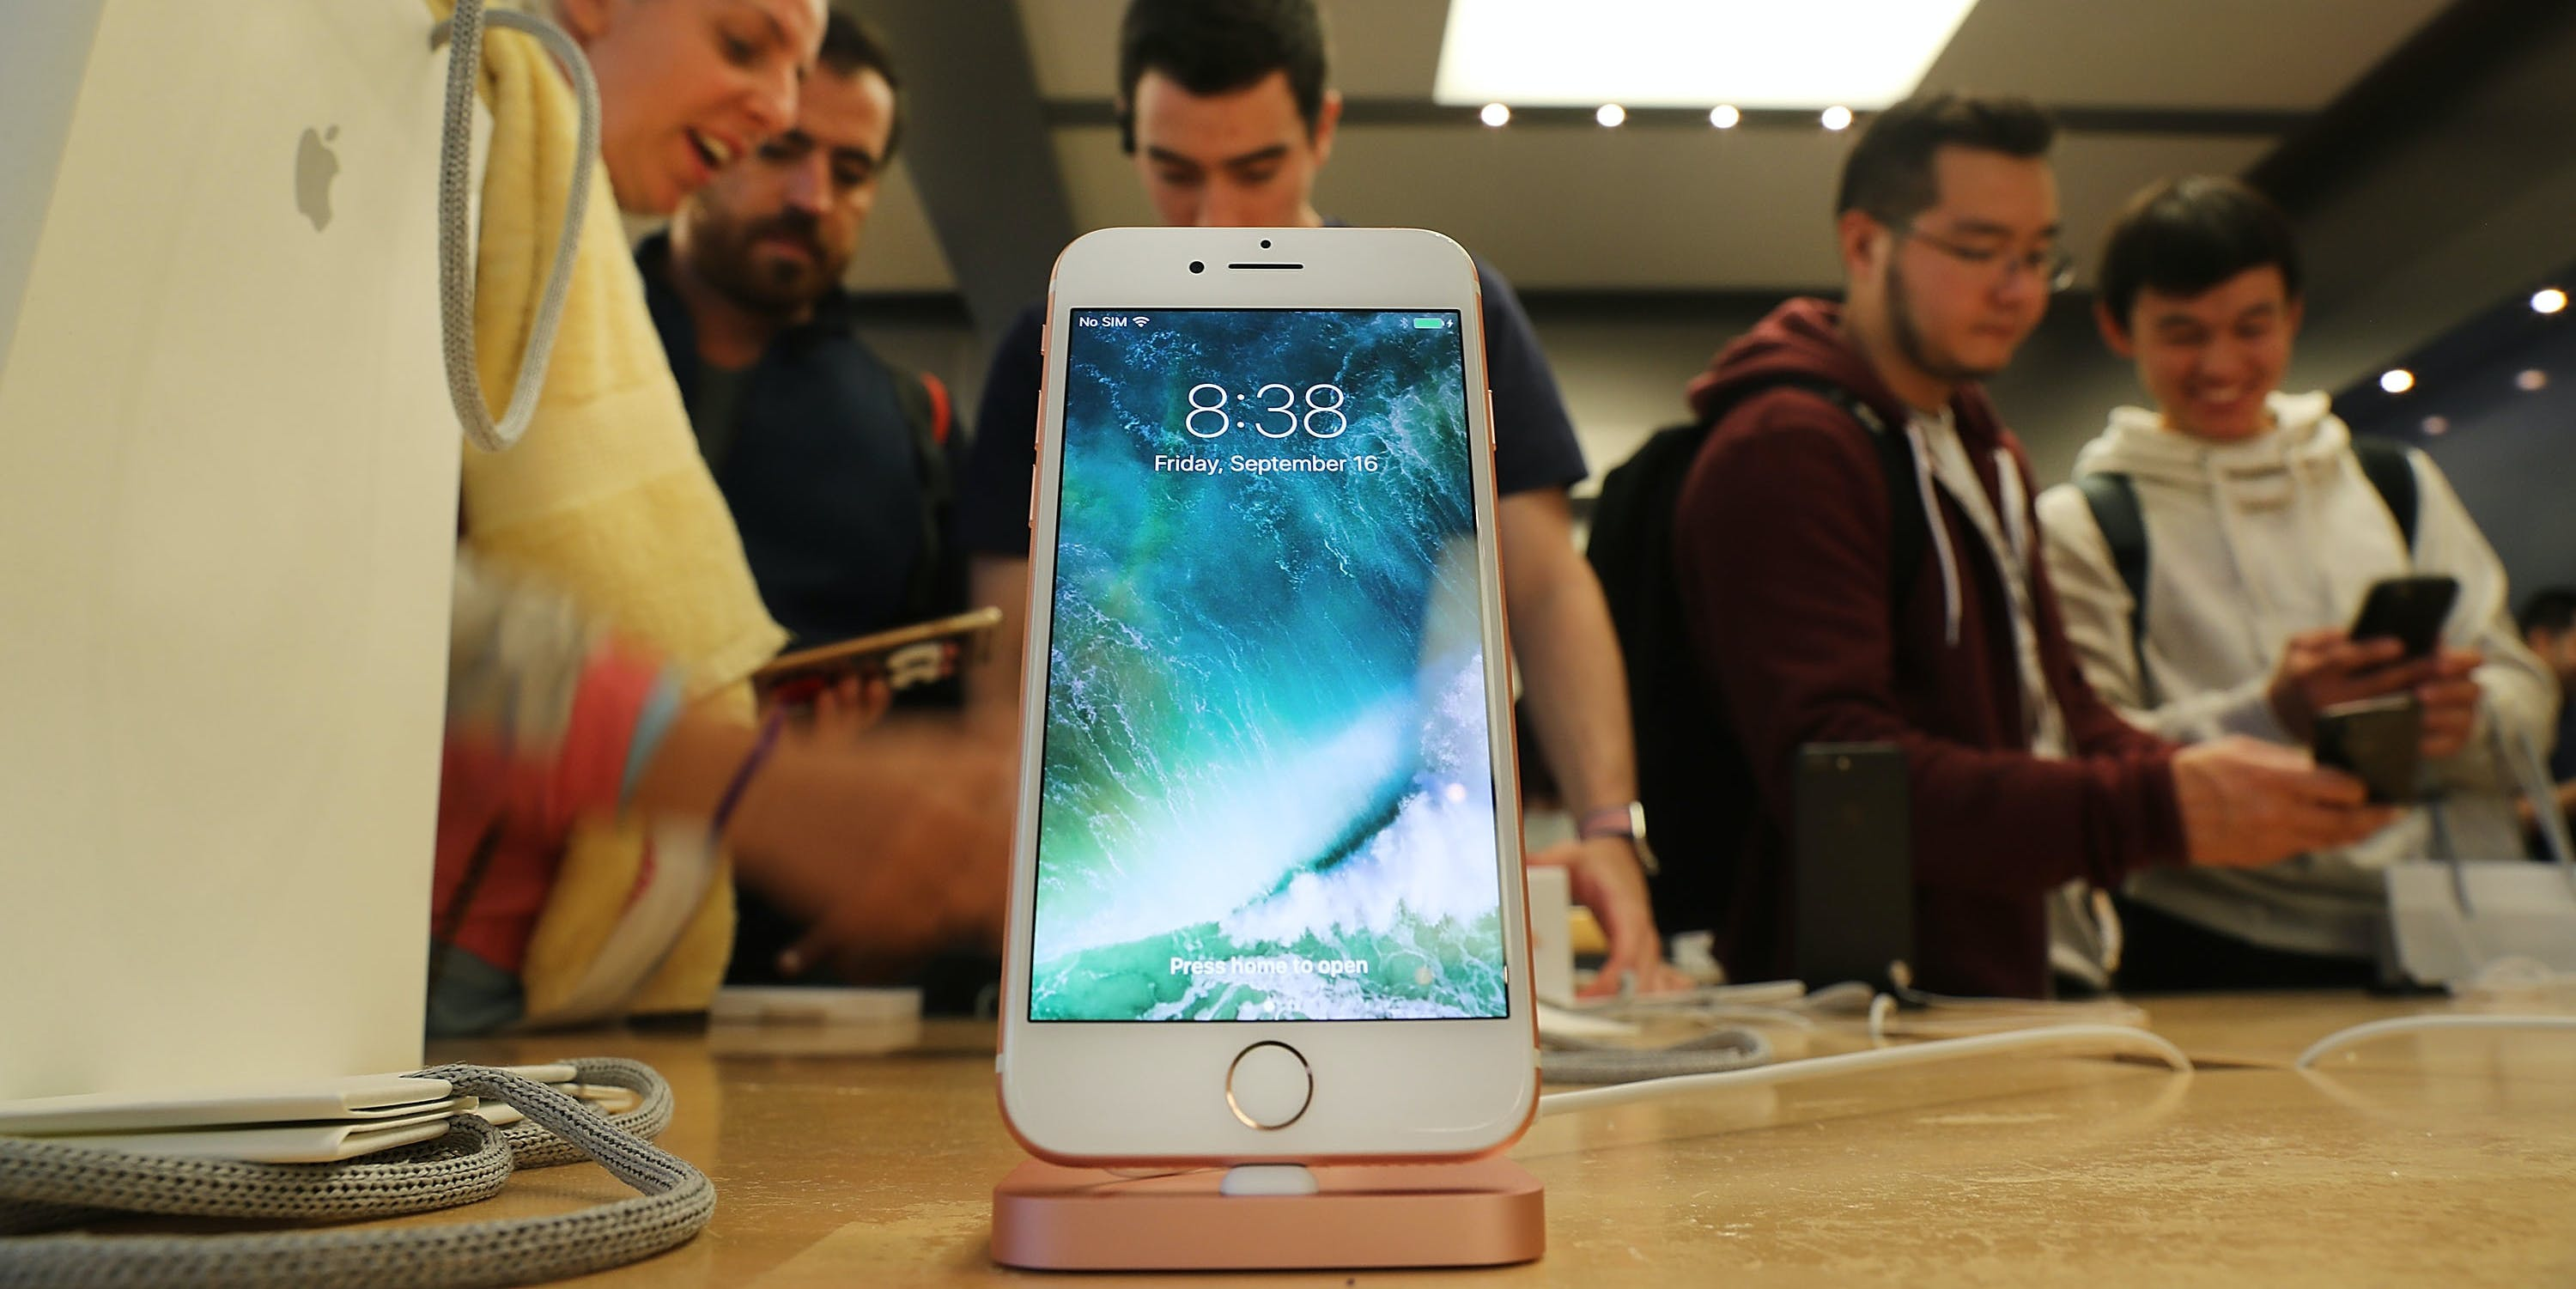 NEW YORK, NY - SEPTEMBER 16:  The new iPhone 7 is displayed on a table at an Apple store in Manhattan on September 16, 2016 in New York City. People around the globe waited in long lines to be among the first to purchase both the iPhone 7 and the iPhone 7 Plus. The phones offer longer battery life, faster browsing, a better camera and do not have a traditional headphone jack.  (Photo by Spencer Platt/Getty Images)